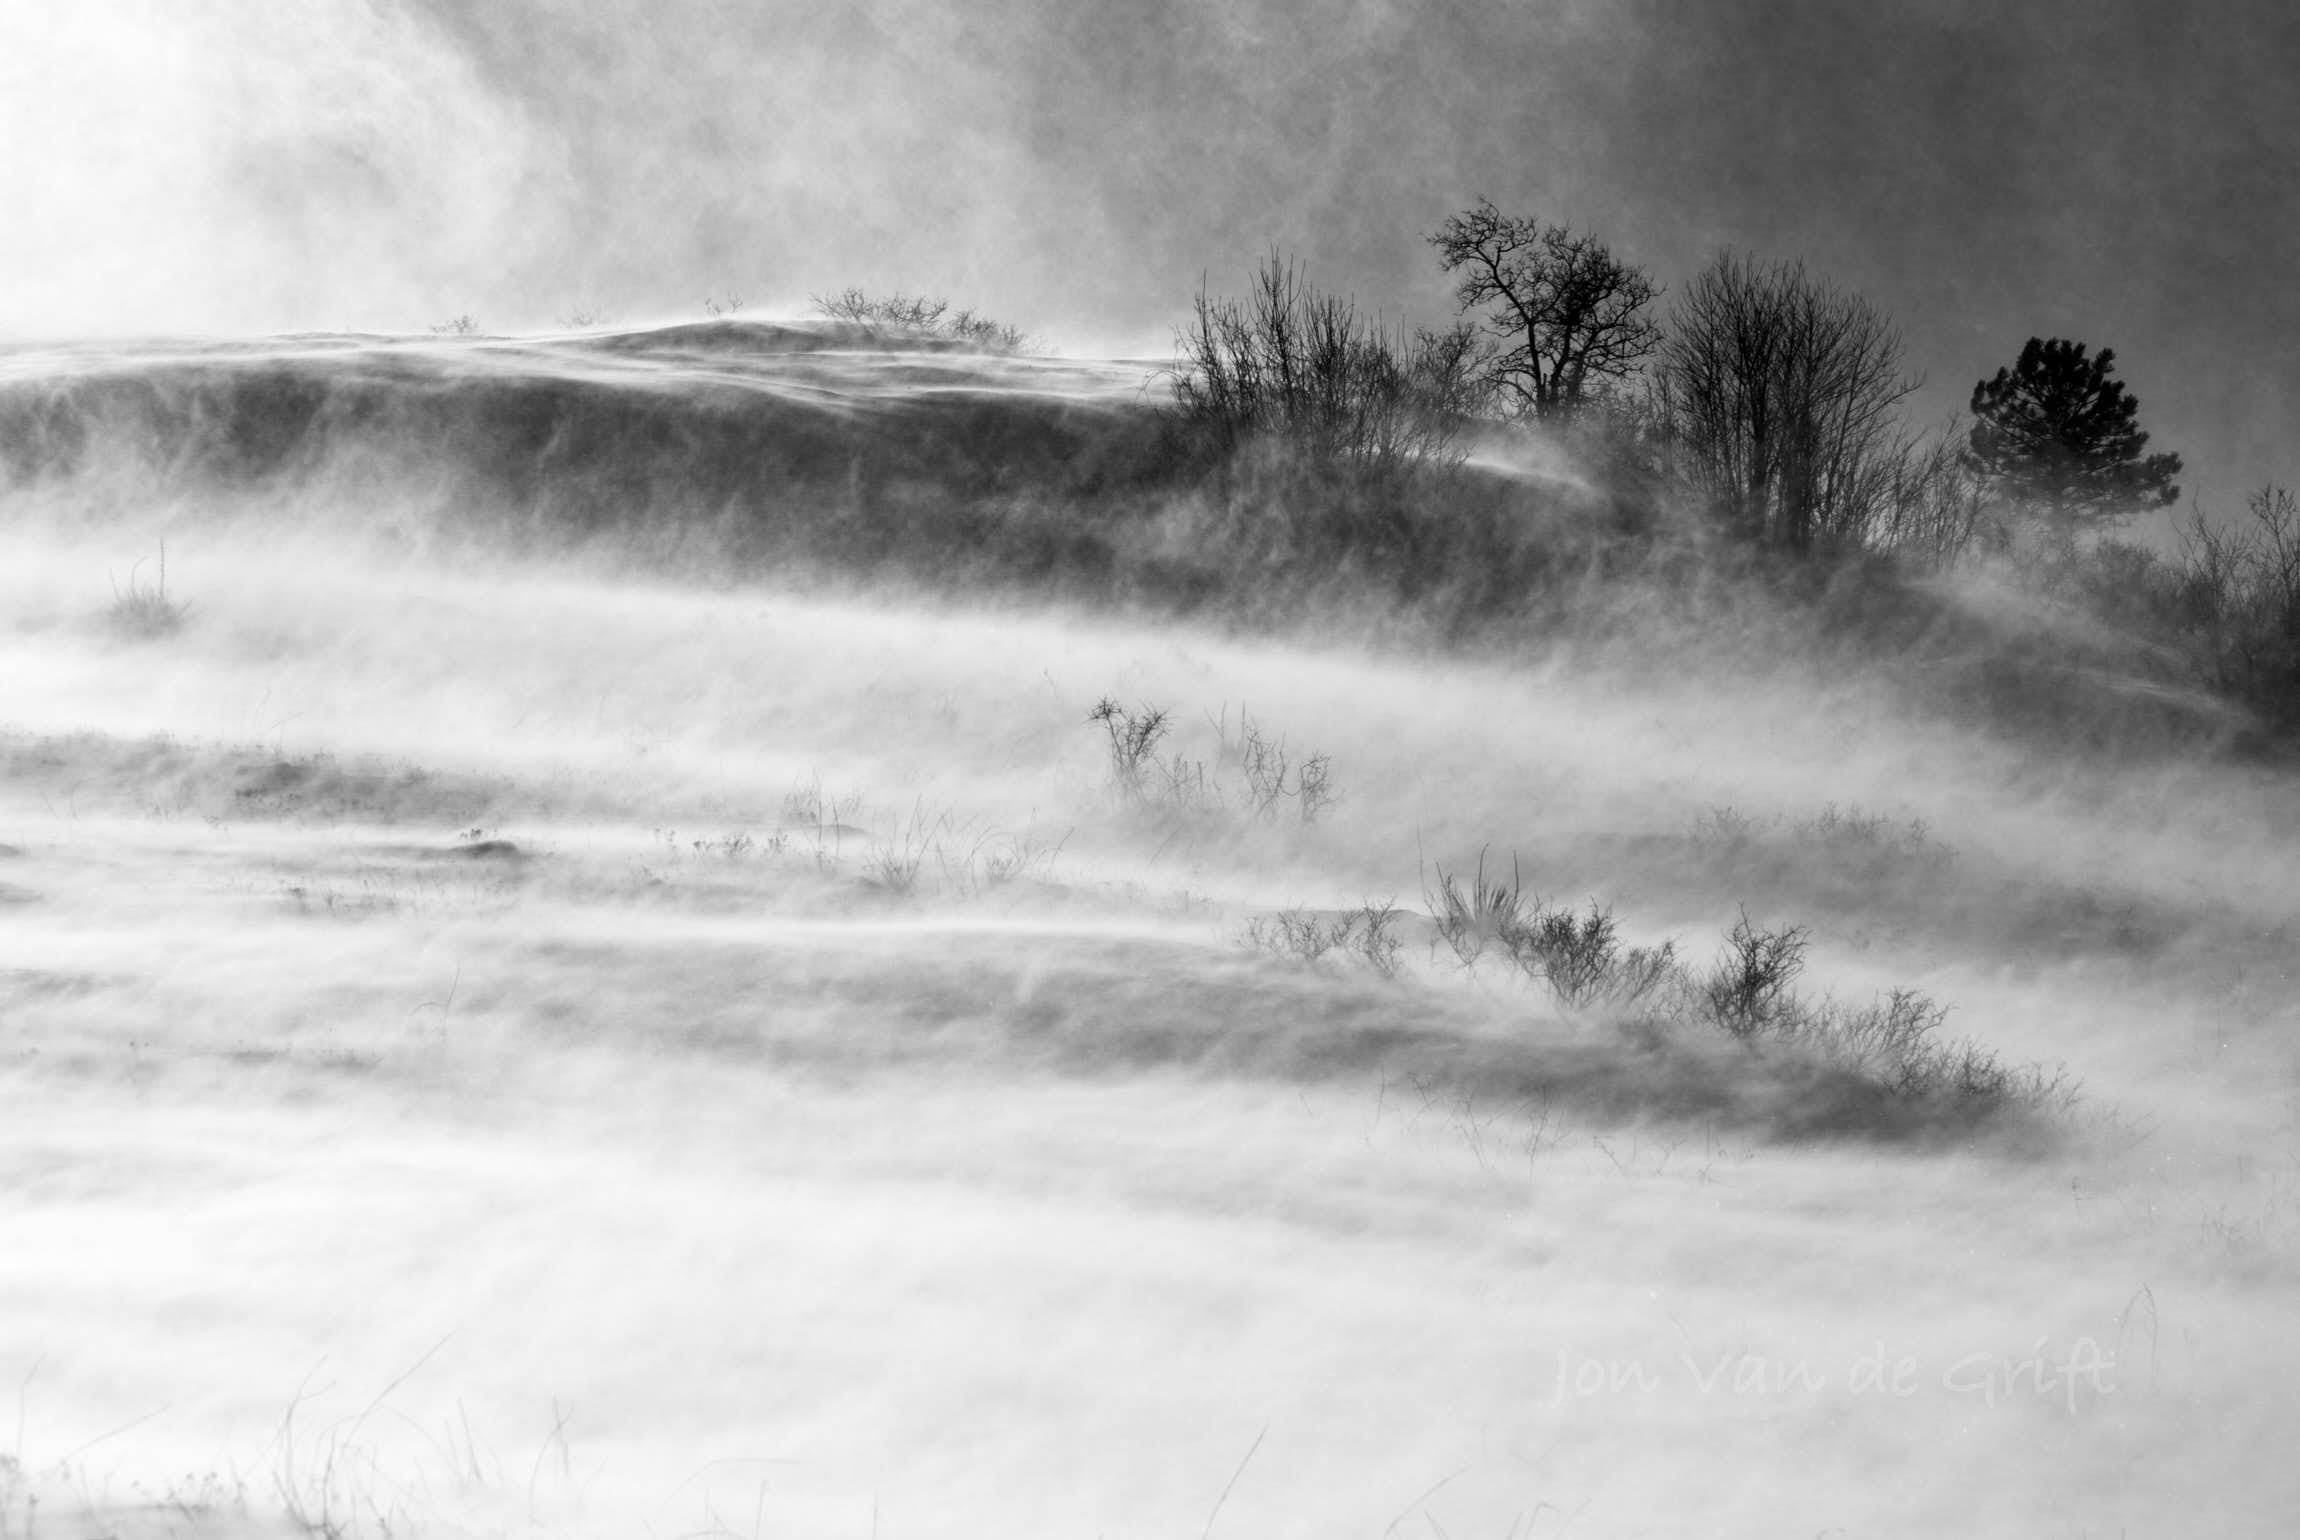 Black and white aerial photograph of a ground blizzard over a hill with sparse vegetation